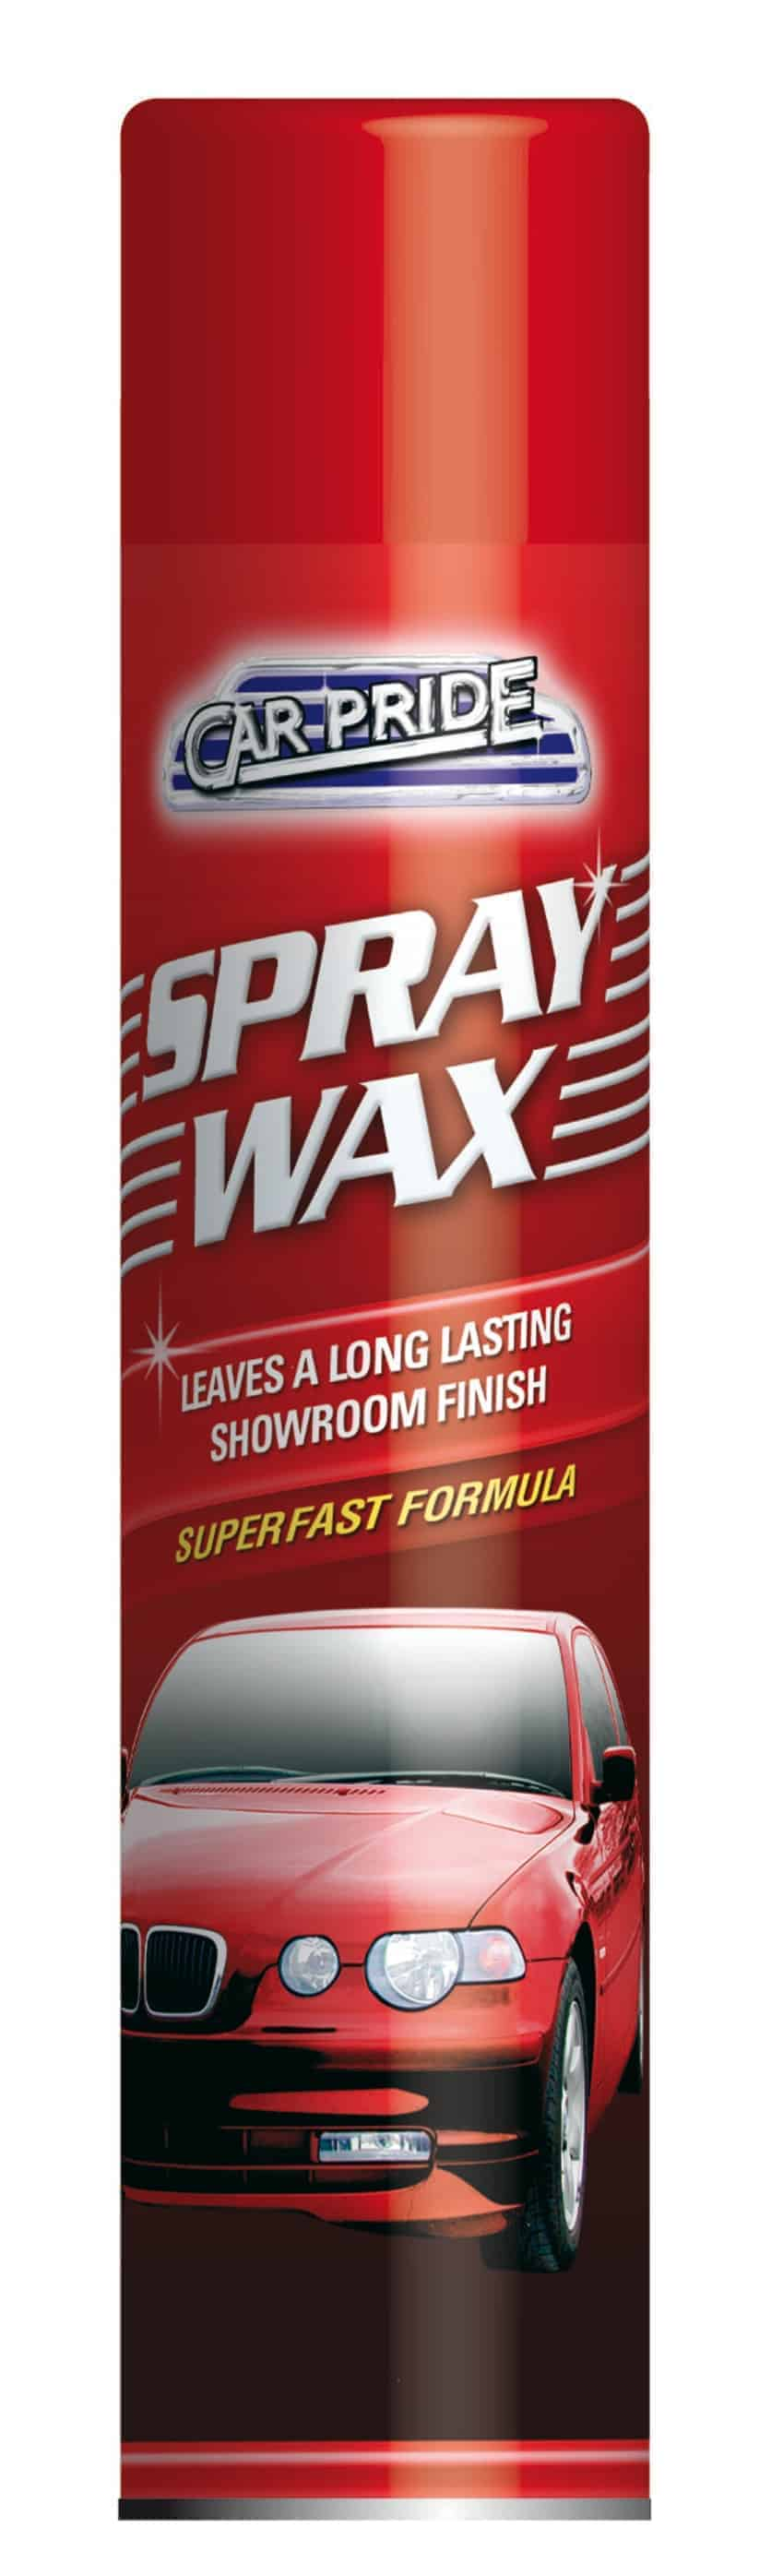 Car Pride Spray Wax